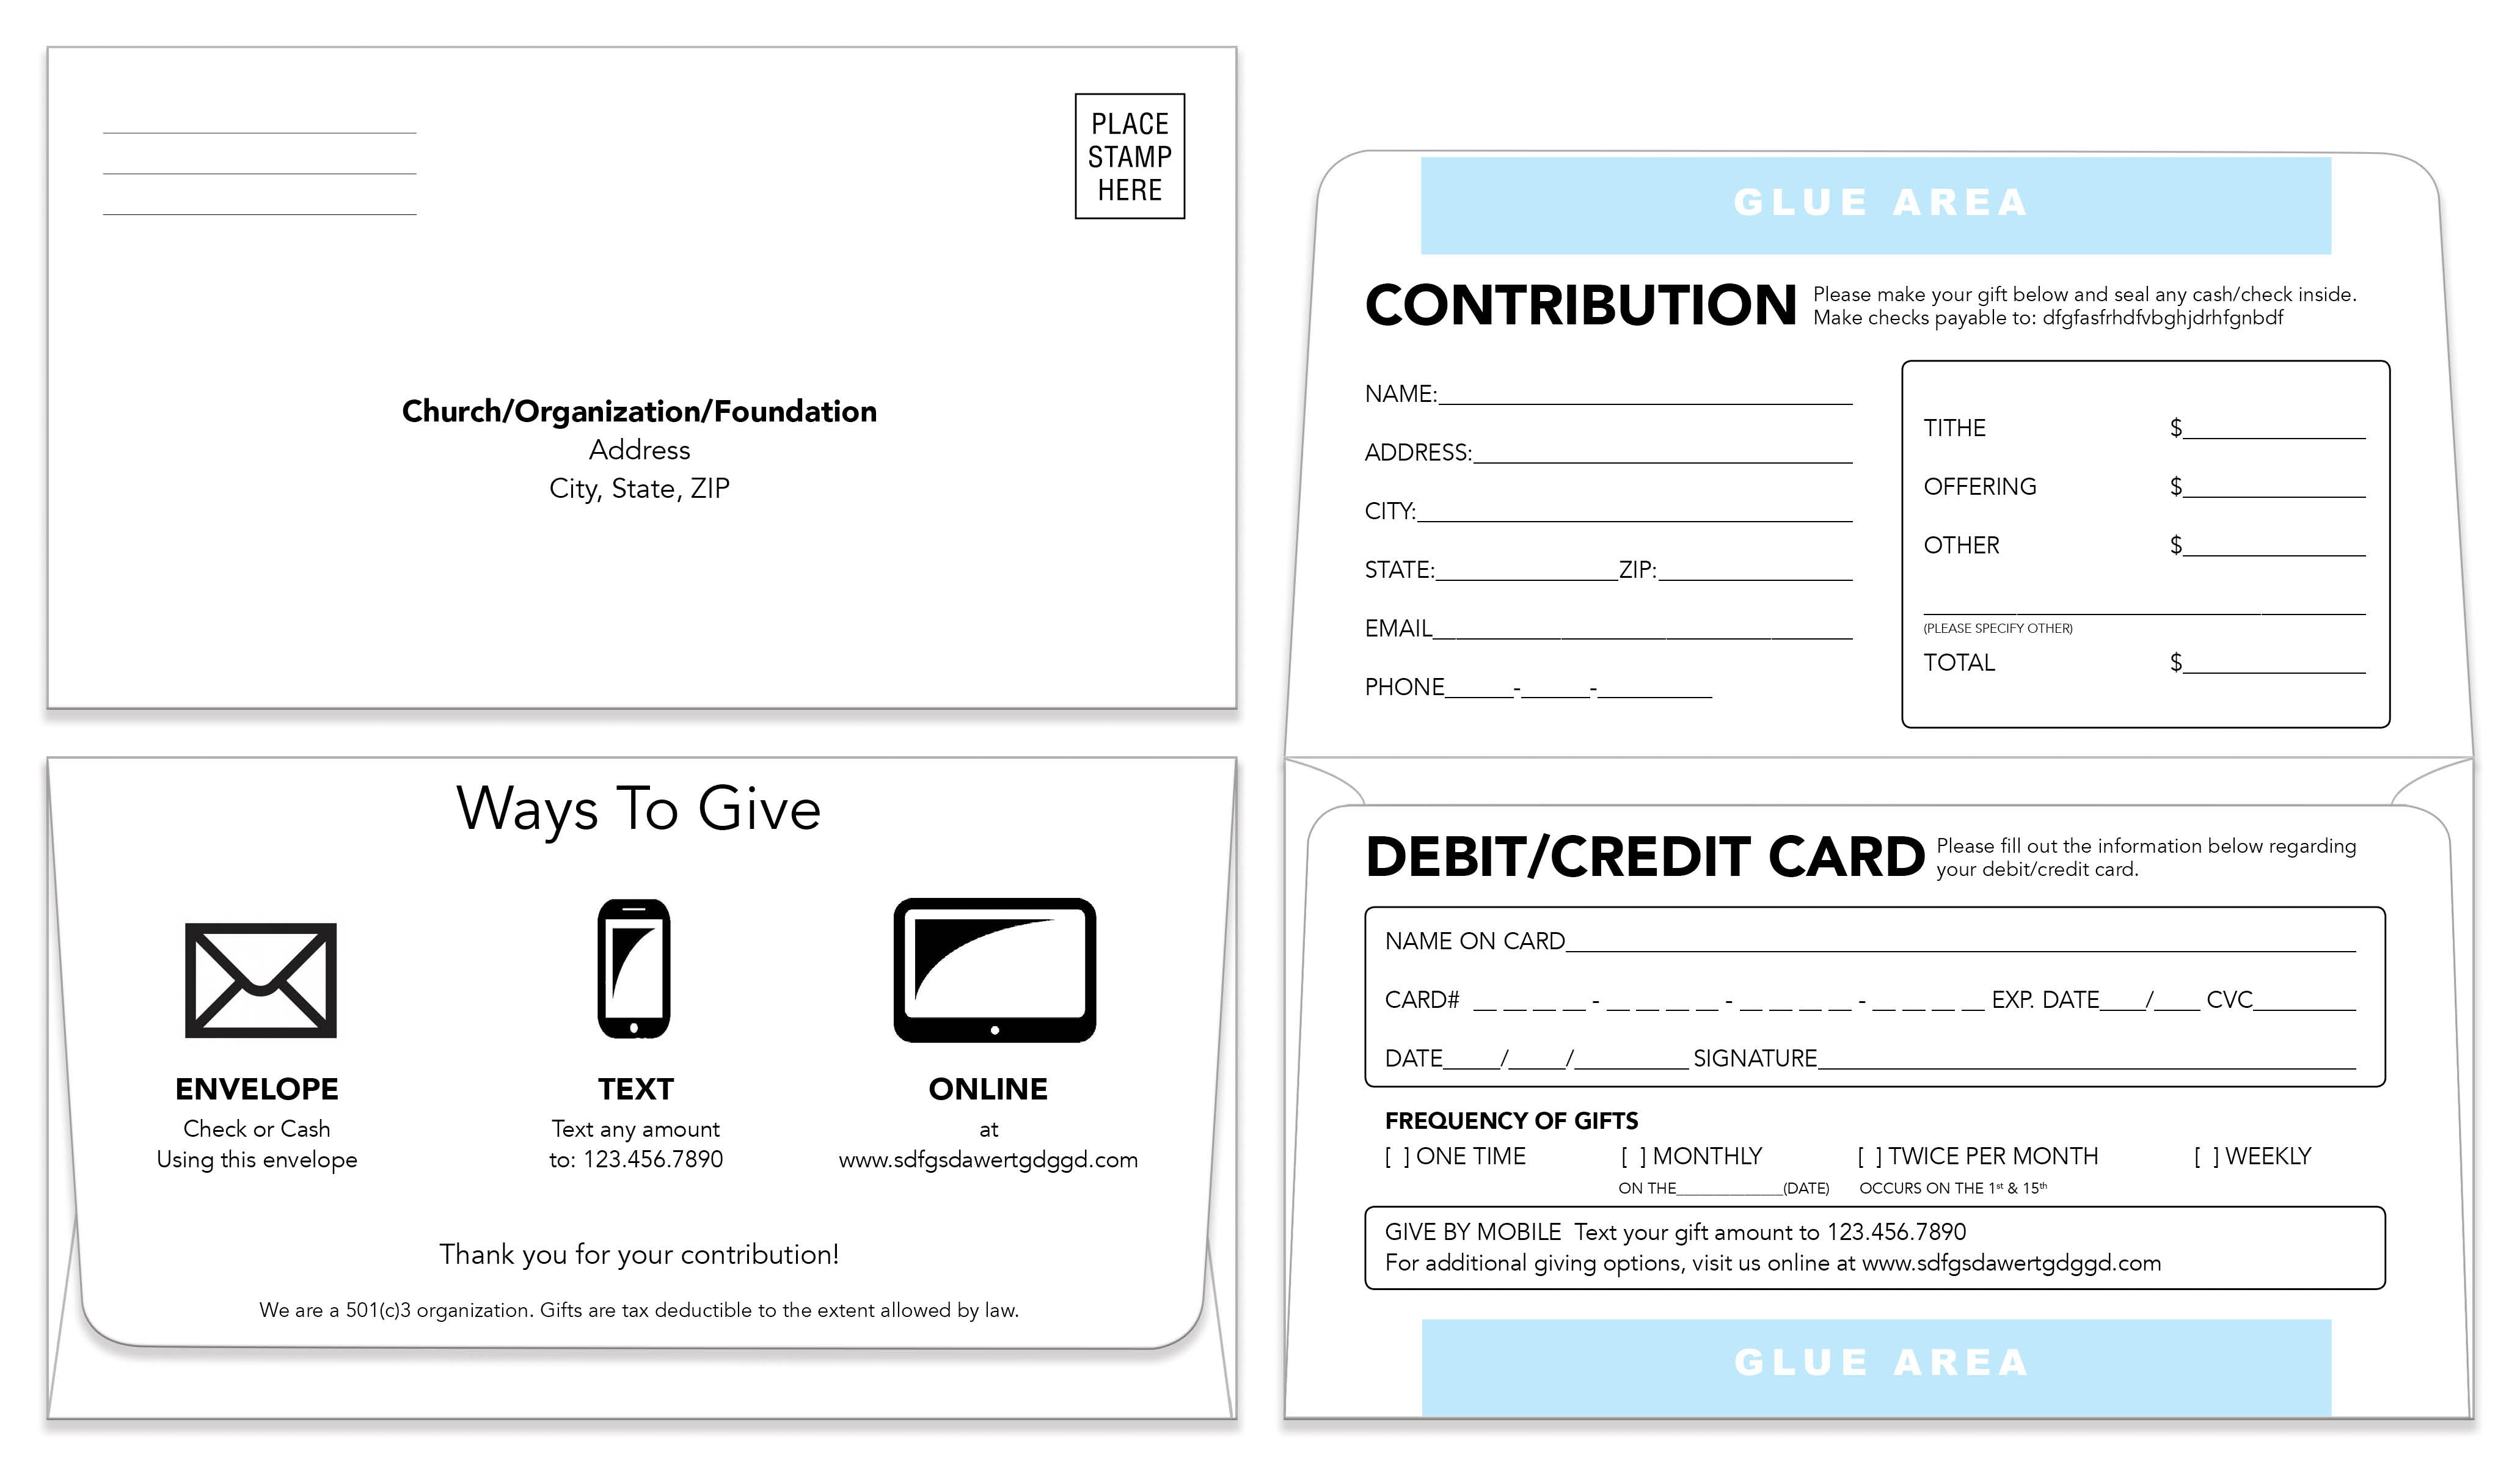 Remittance Envelope Template Donation Envelope - Remit envelope template